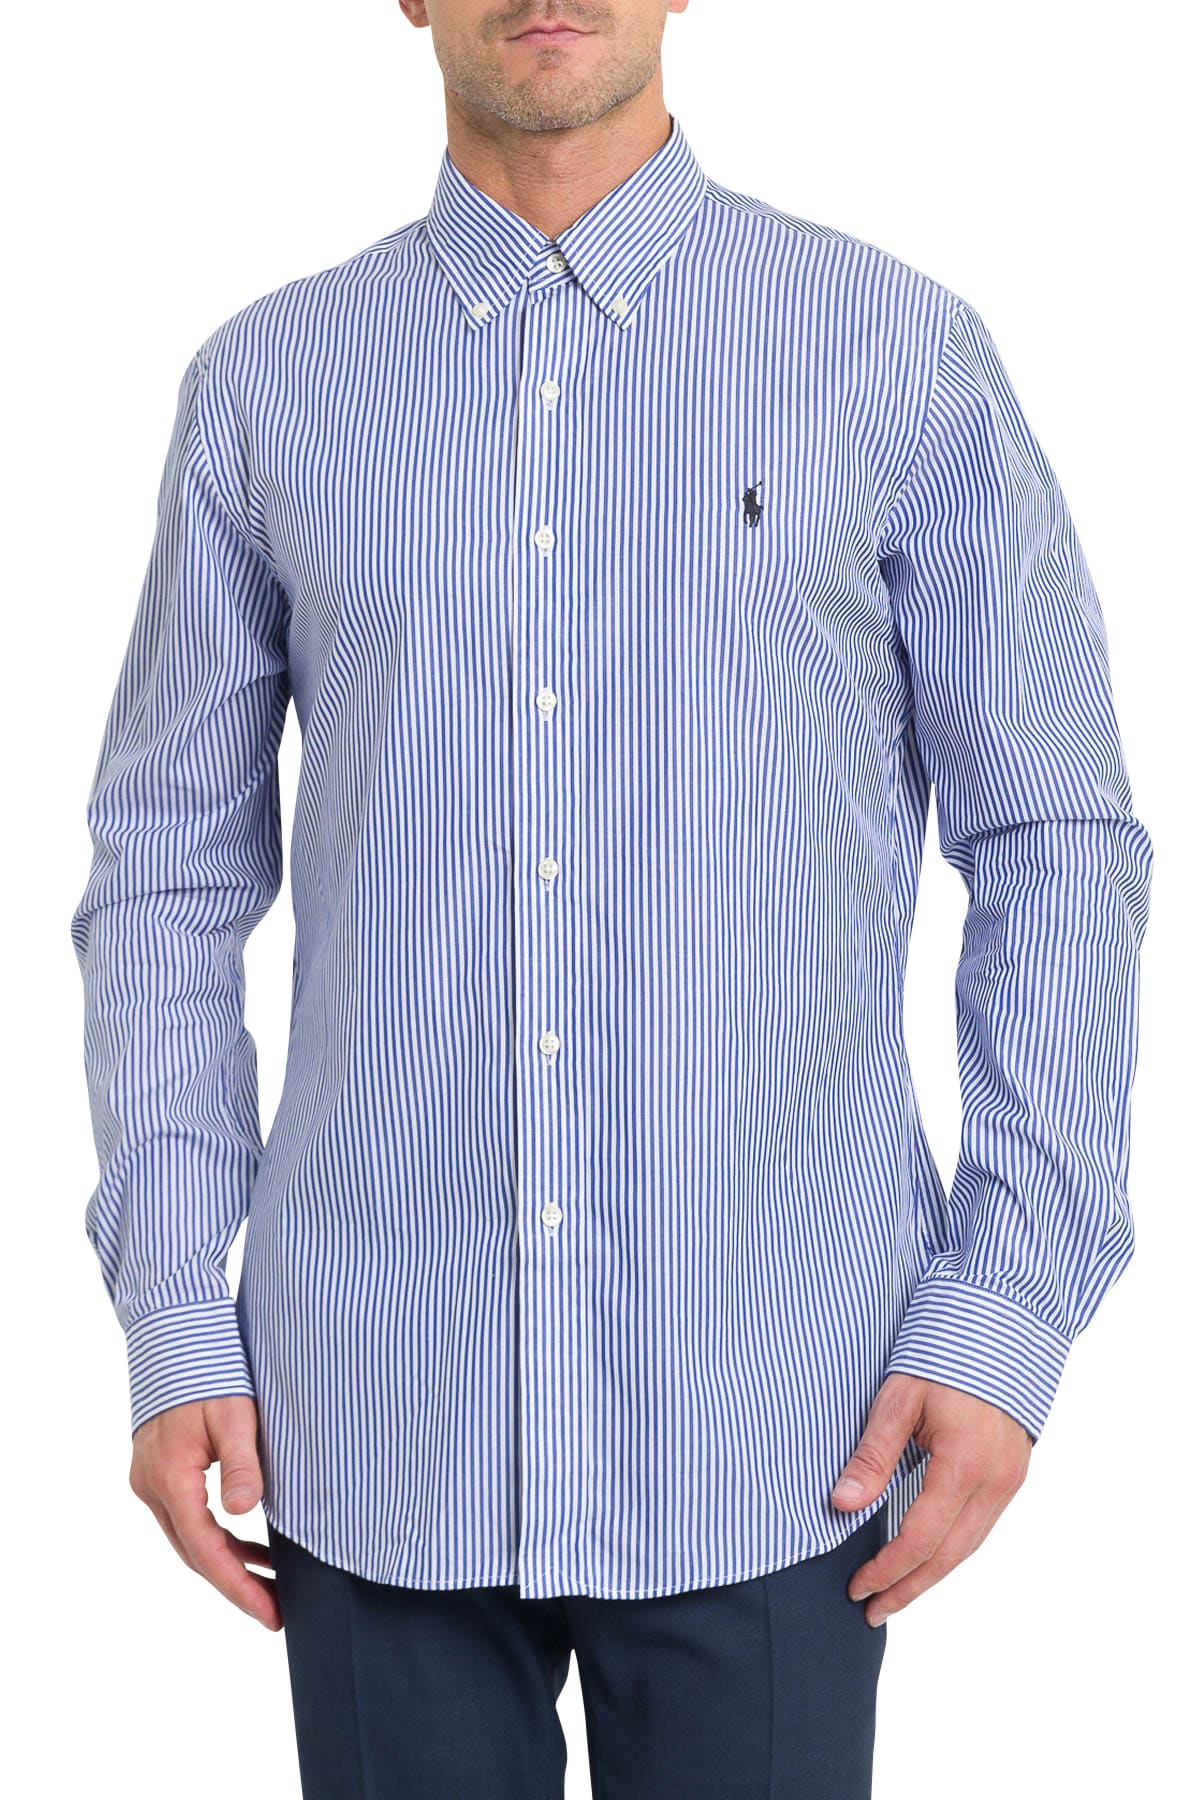 Ralph Lauren Striped Shirt With Embroidered Logo